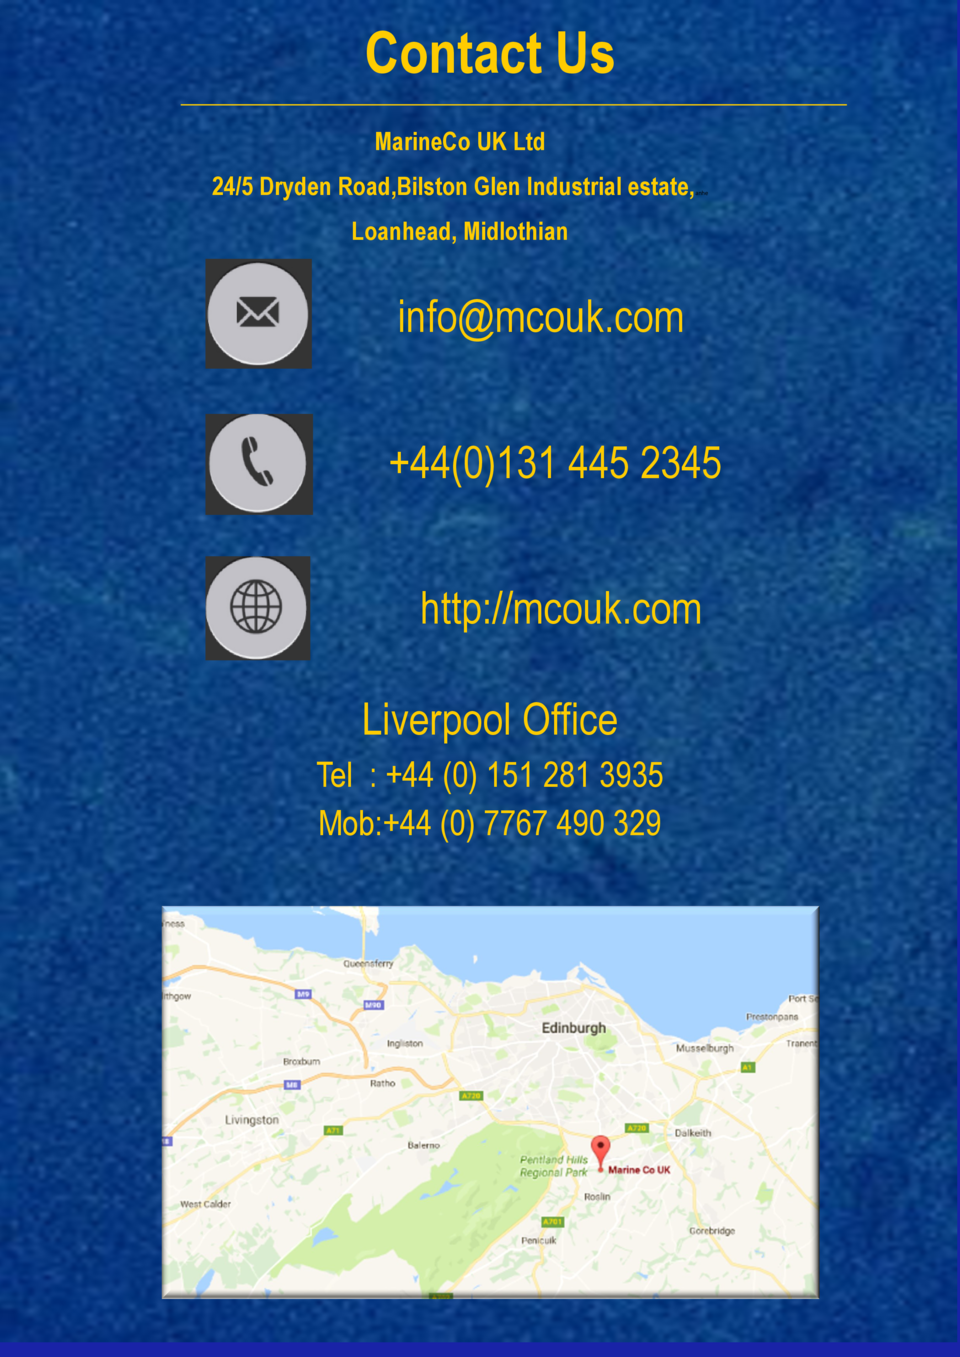 Contact Us MarineCo UK Ltd 24 5 Dryden Road,Bilston Glen Industrial estate,  anhe  Loanhead, Midlothian  info mcouk.com  4...